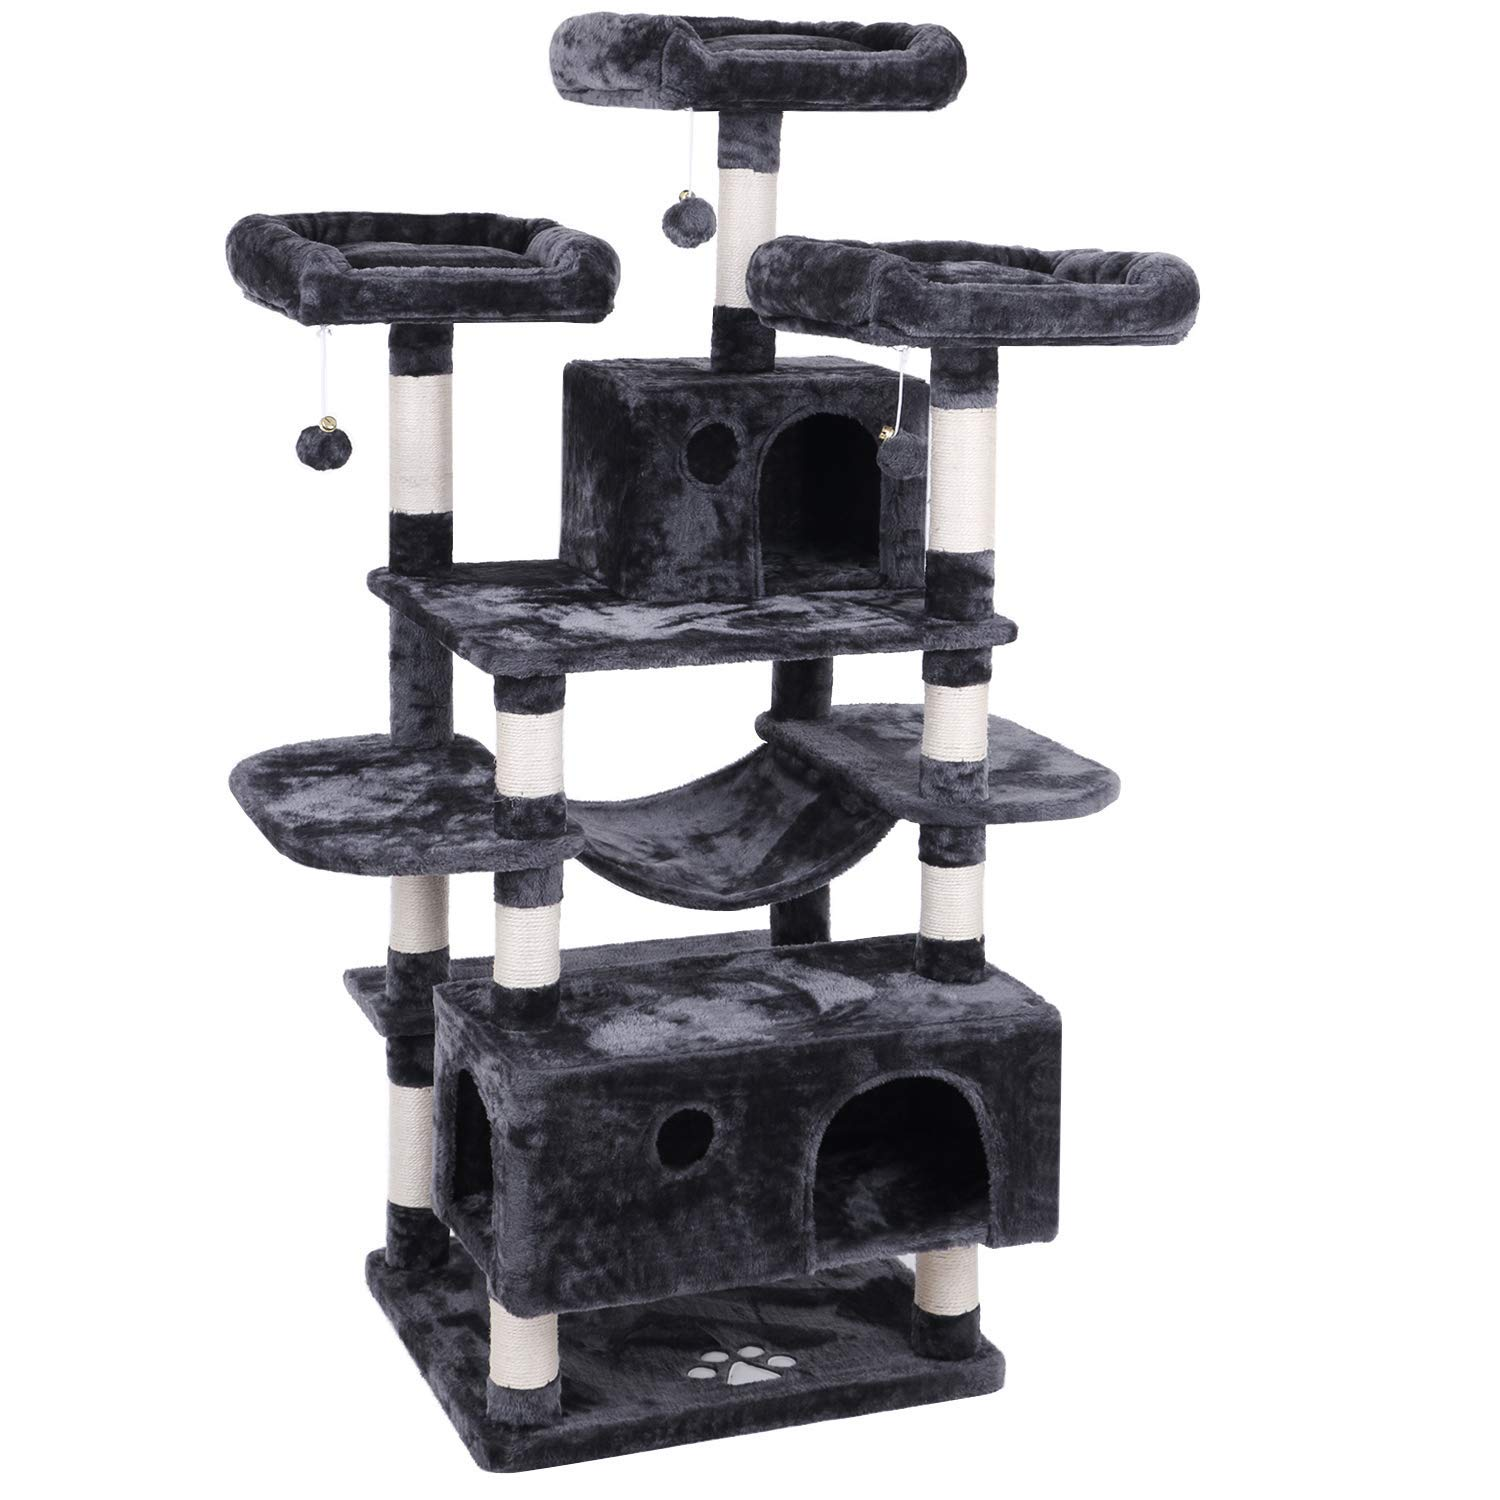 BEWISHOME Cat Tree Condo Furniture Kitten Activity Tower